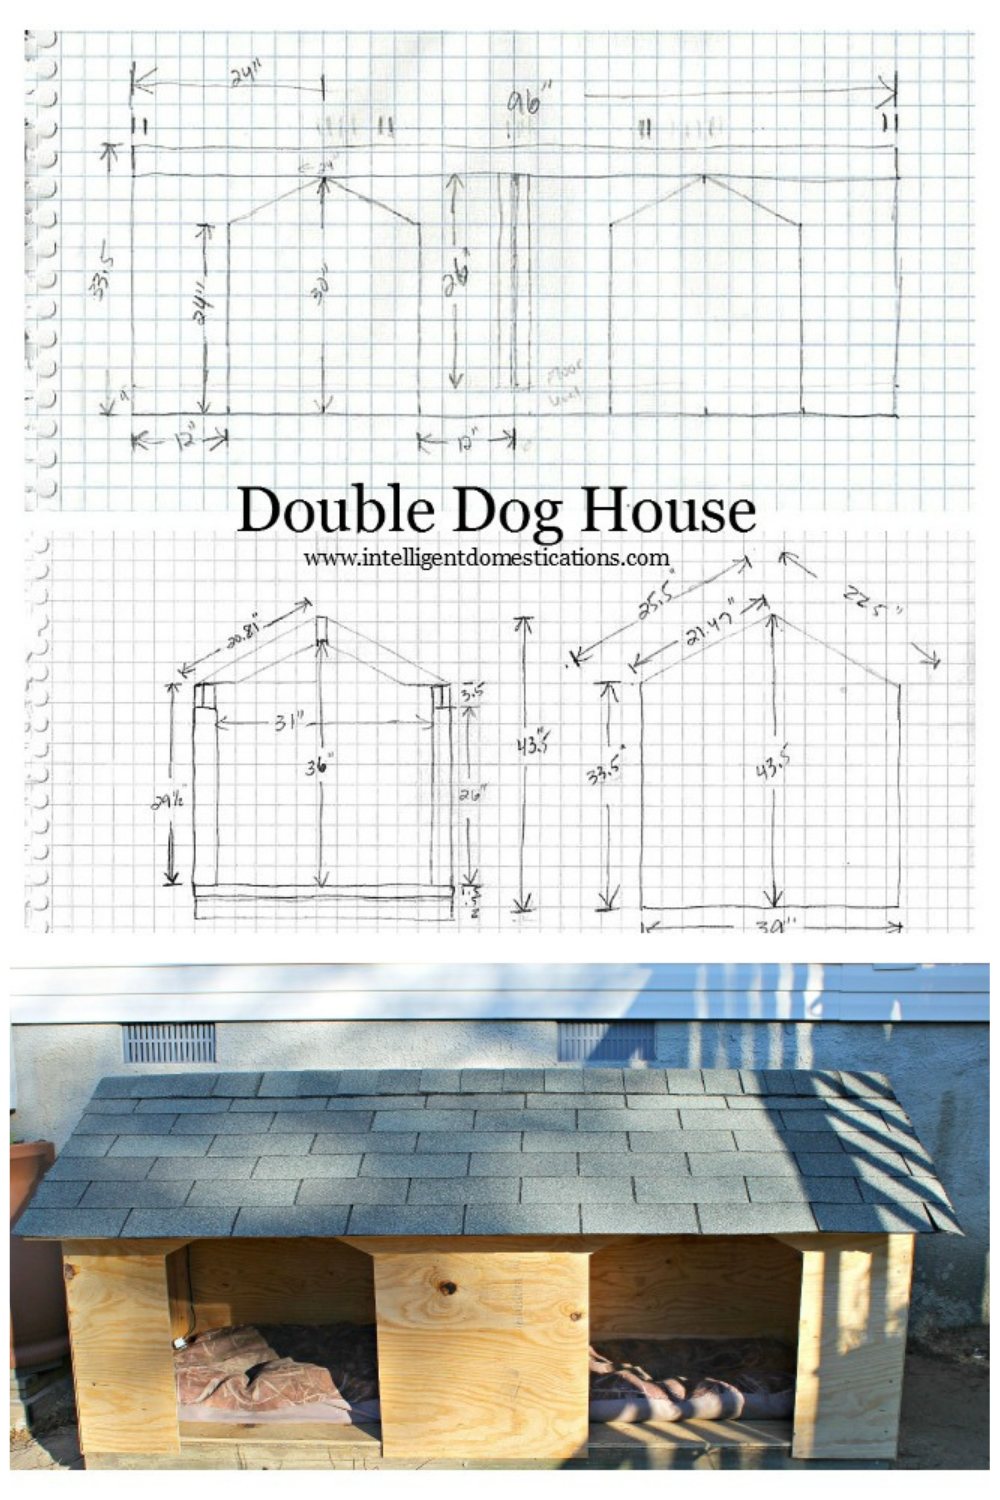 Double door Dog House plans sketch and a picture of the dog house